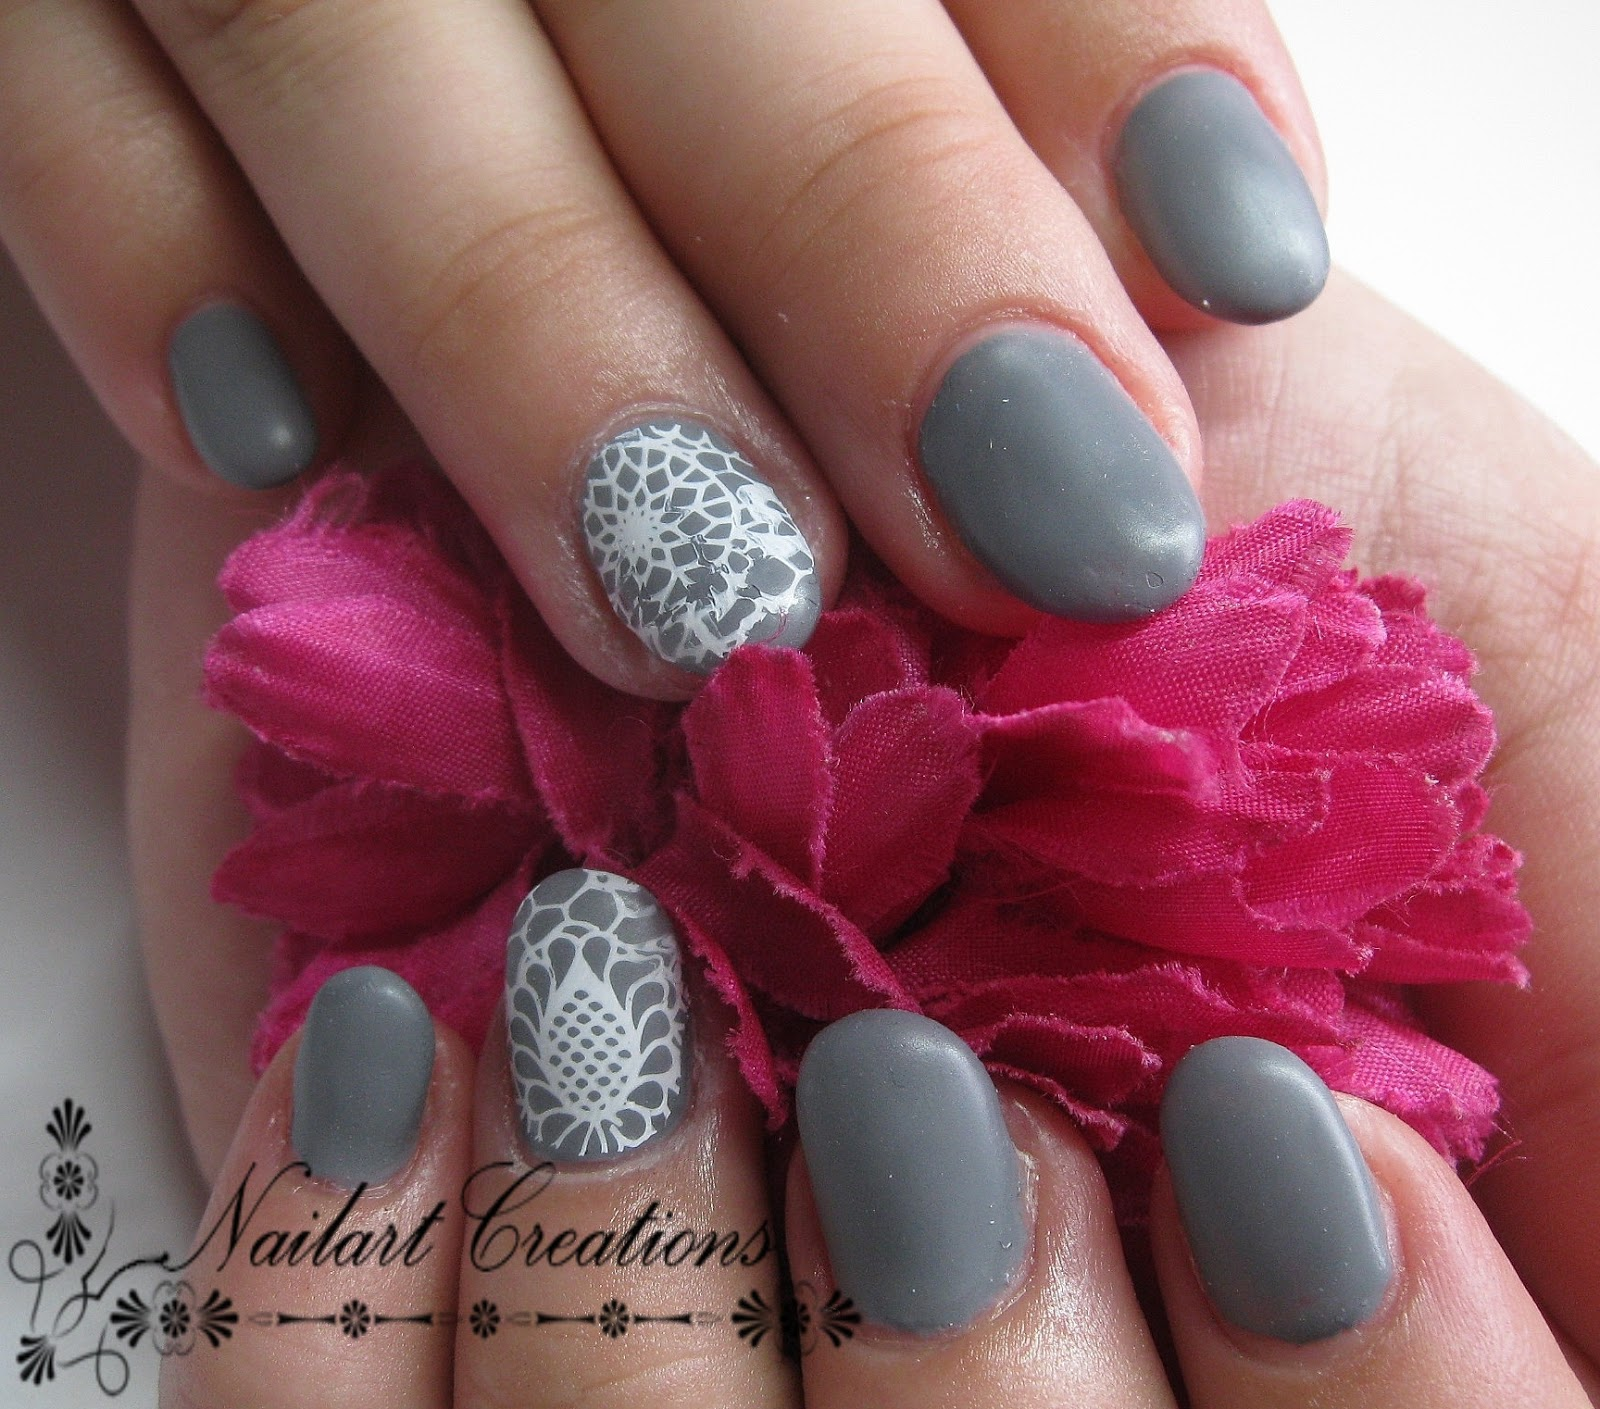 nailart creations gelnagels grey matt. Black Bedroom Furniture Sets. Home Design Ideas